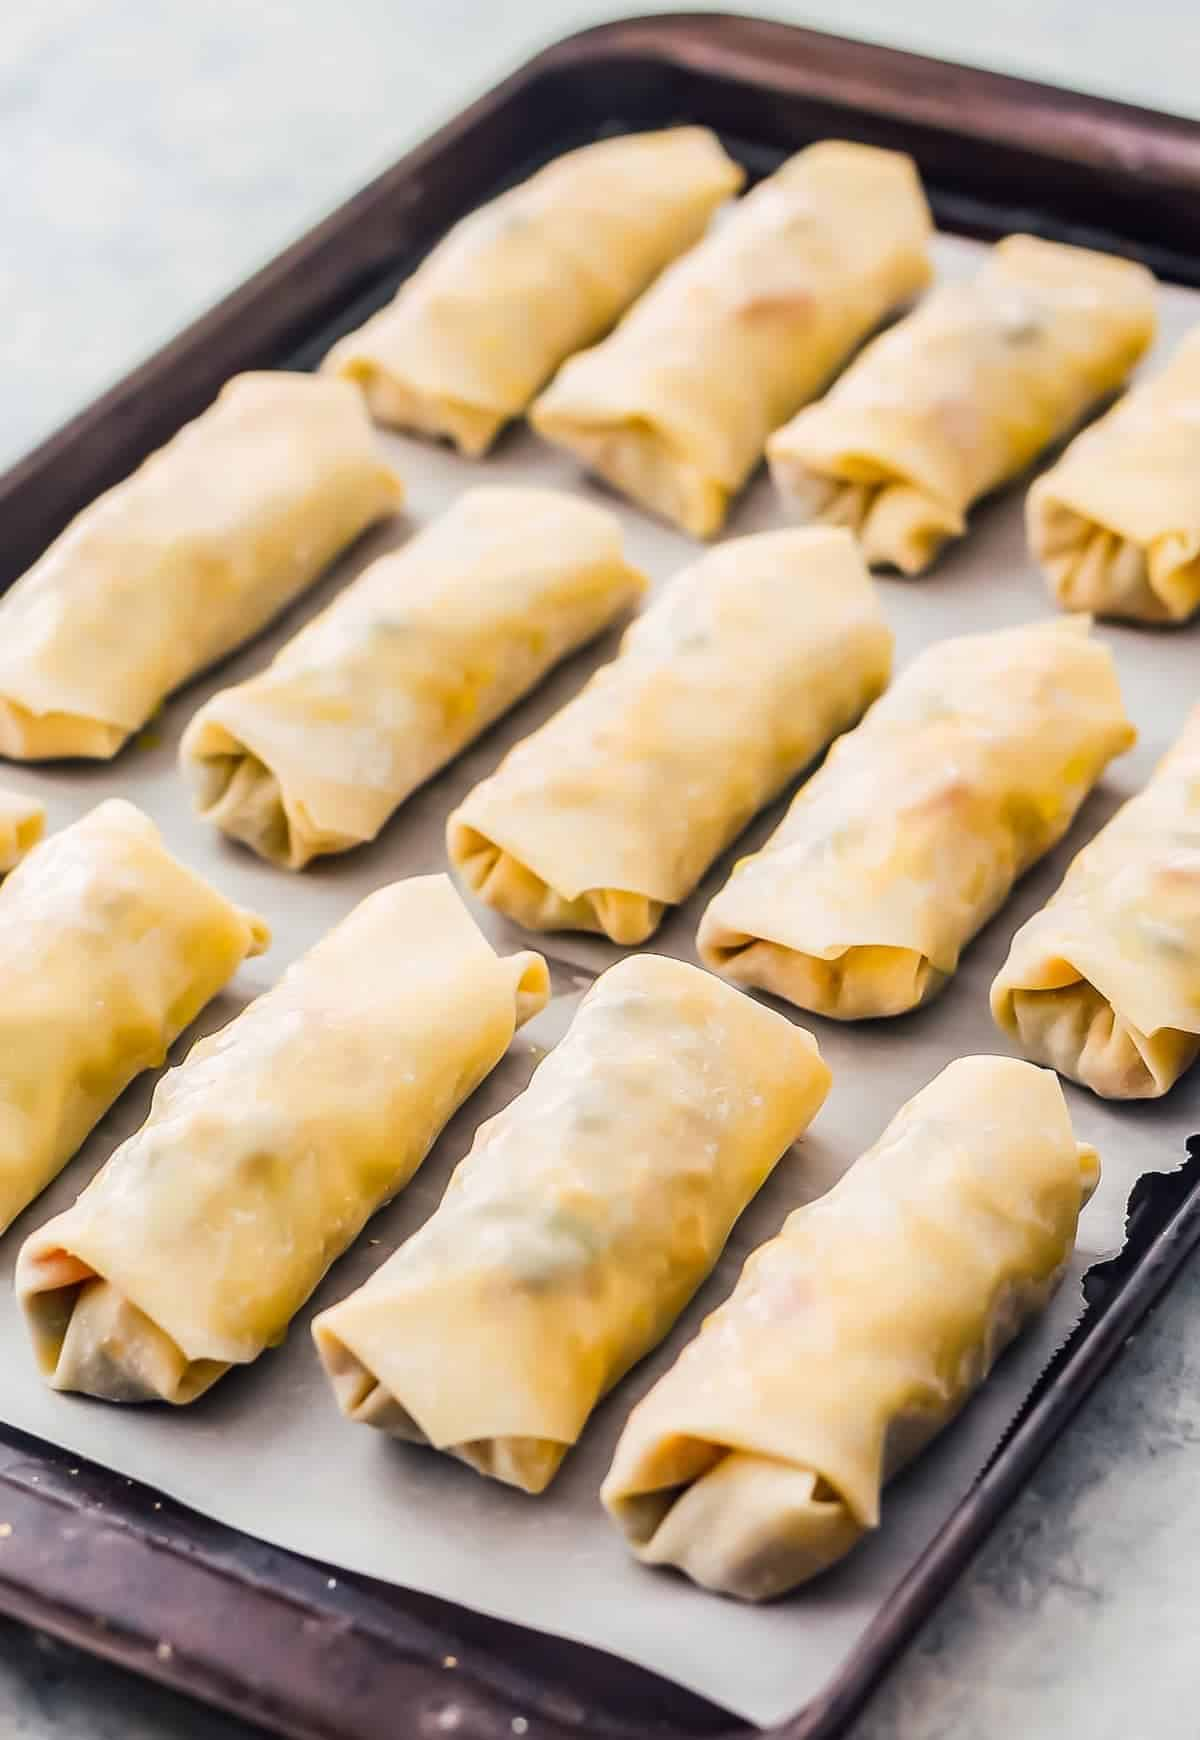 Baked Southwest Chicken Egg Rolls are packed with seasoned chicken and veggies, then baked until crispy and golden brown. Southwest Egg Rolls are served with an avocado dipping sauce, which is easy and perfect! This Baked Egg Rolls Recipes makes an outstanding appetizer to feed a crowd or a healthy after school snack!